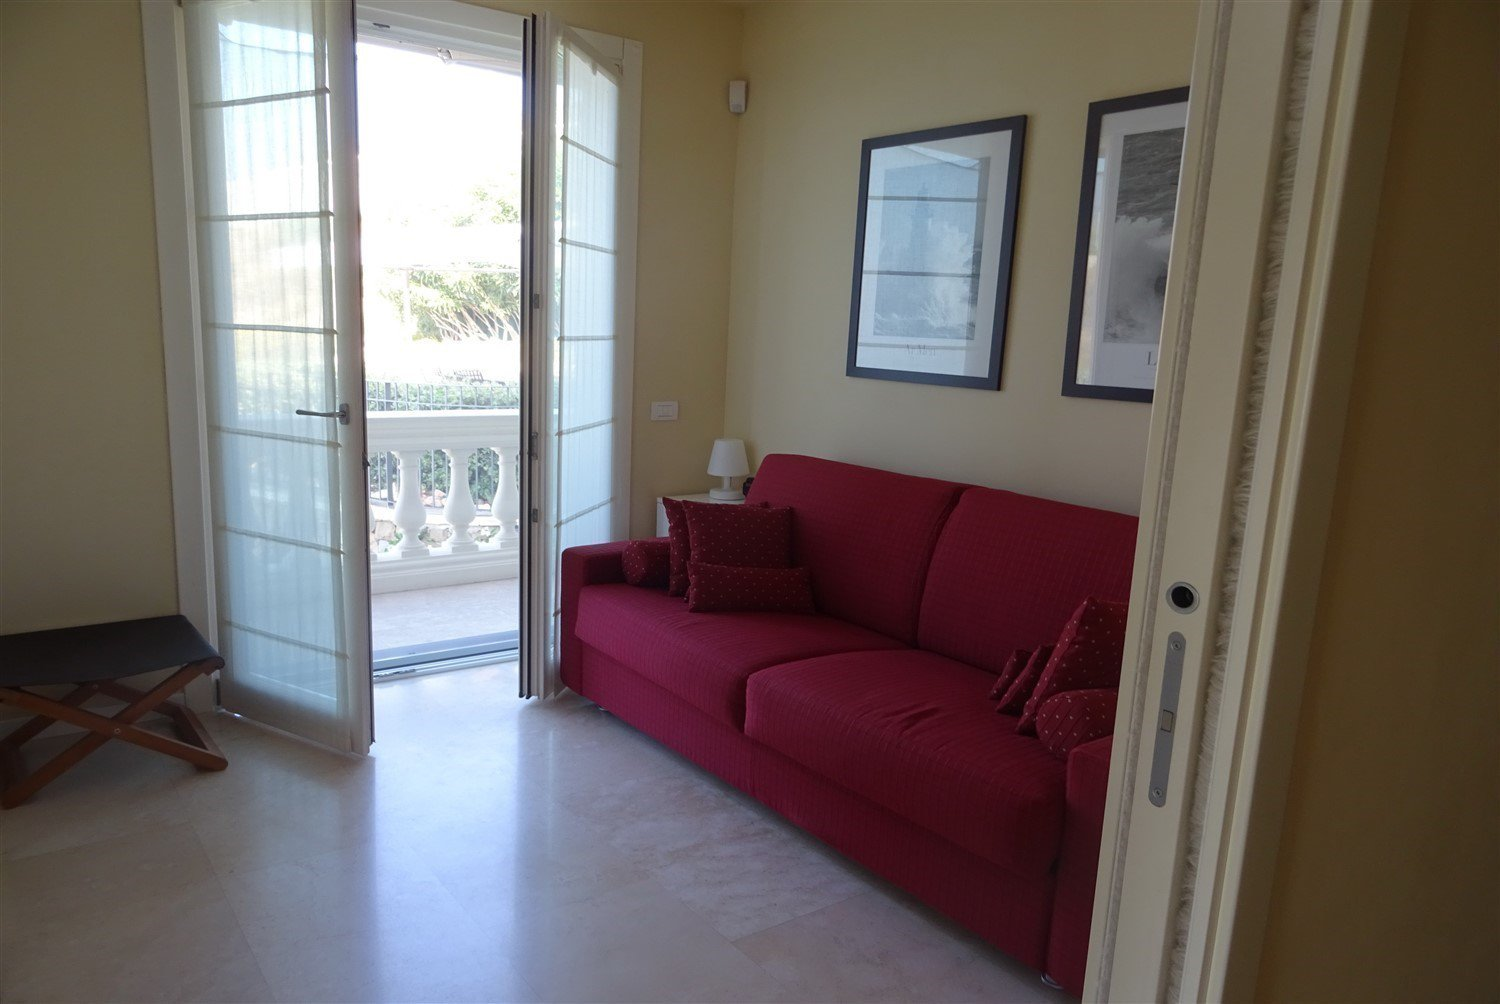 Dream apartment for sale in Sanremo sea view-living room with view